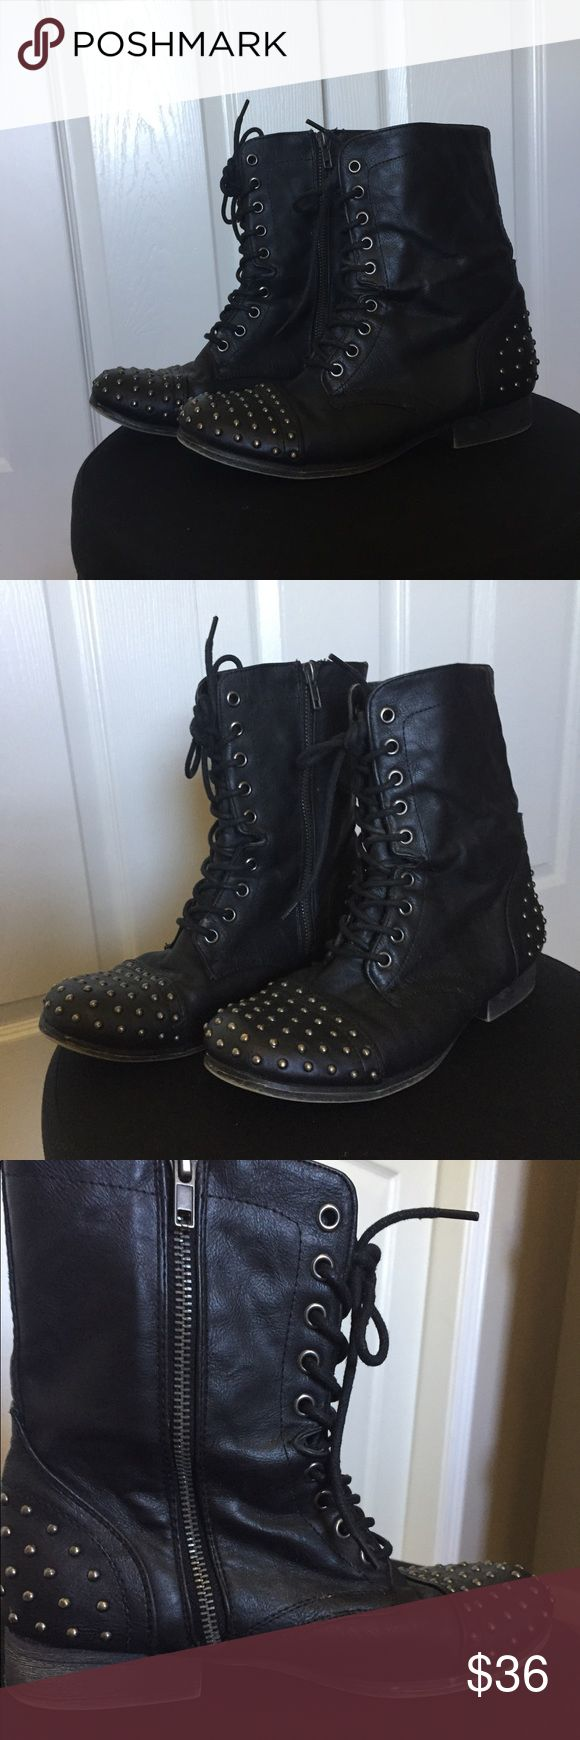 Madden Girl Gewelz Studded Combat Boot Madden Girls Studded combat boot with zippered sides! These are in the style 'Gewelz'. Were worn only about 10-15 times, very comfortable and cue for Fall! size 7.5 Medium Width Steve Madden Shoes Combat & Moto Boots